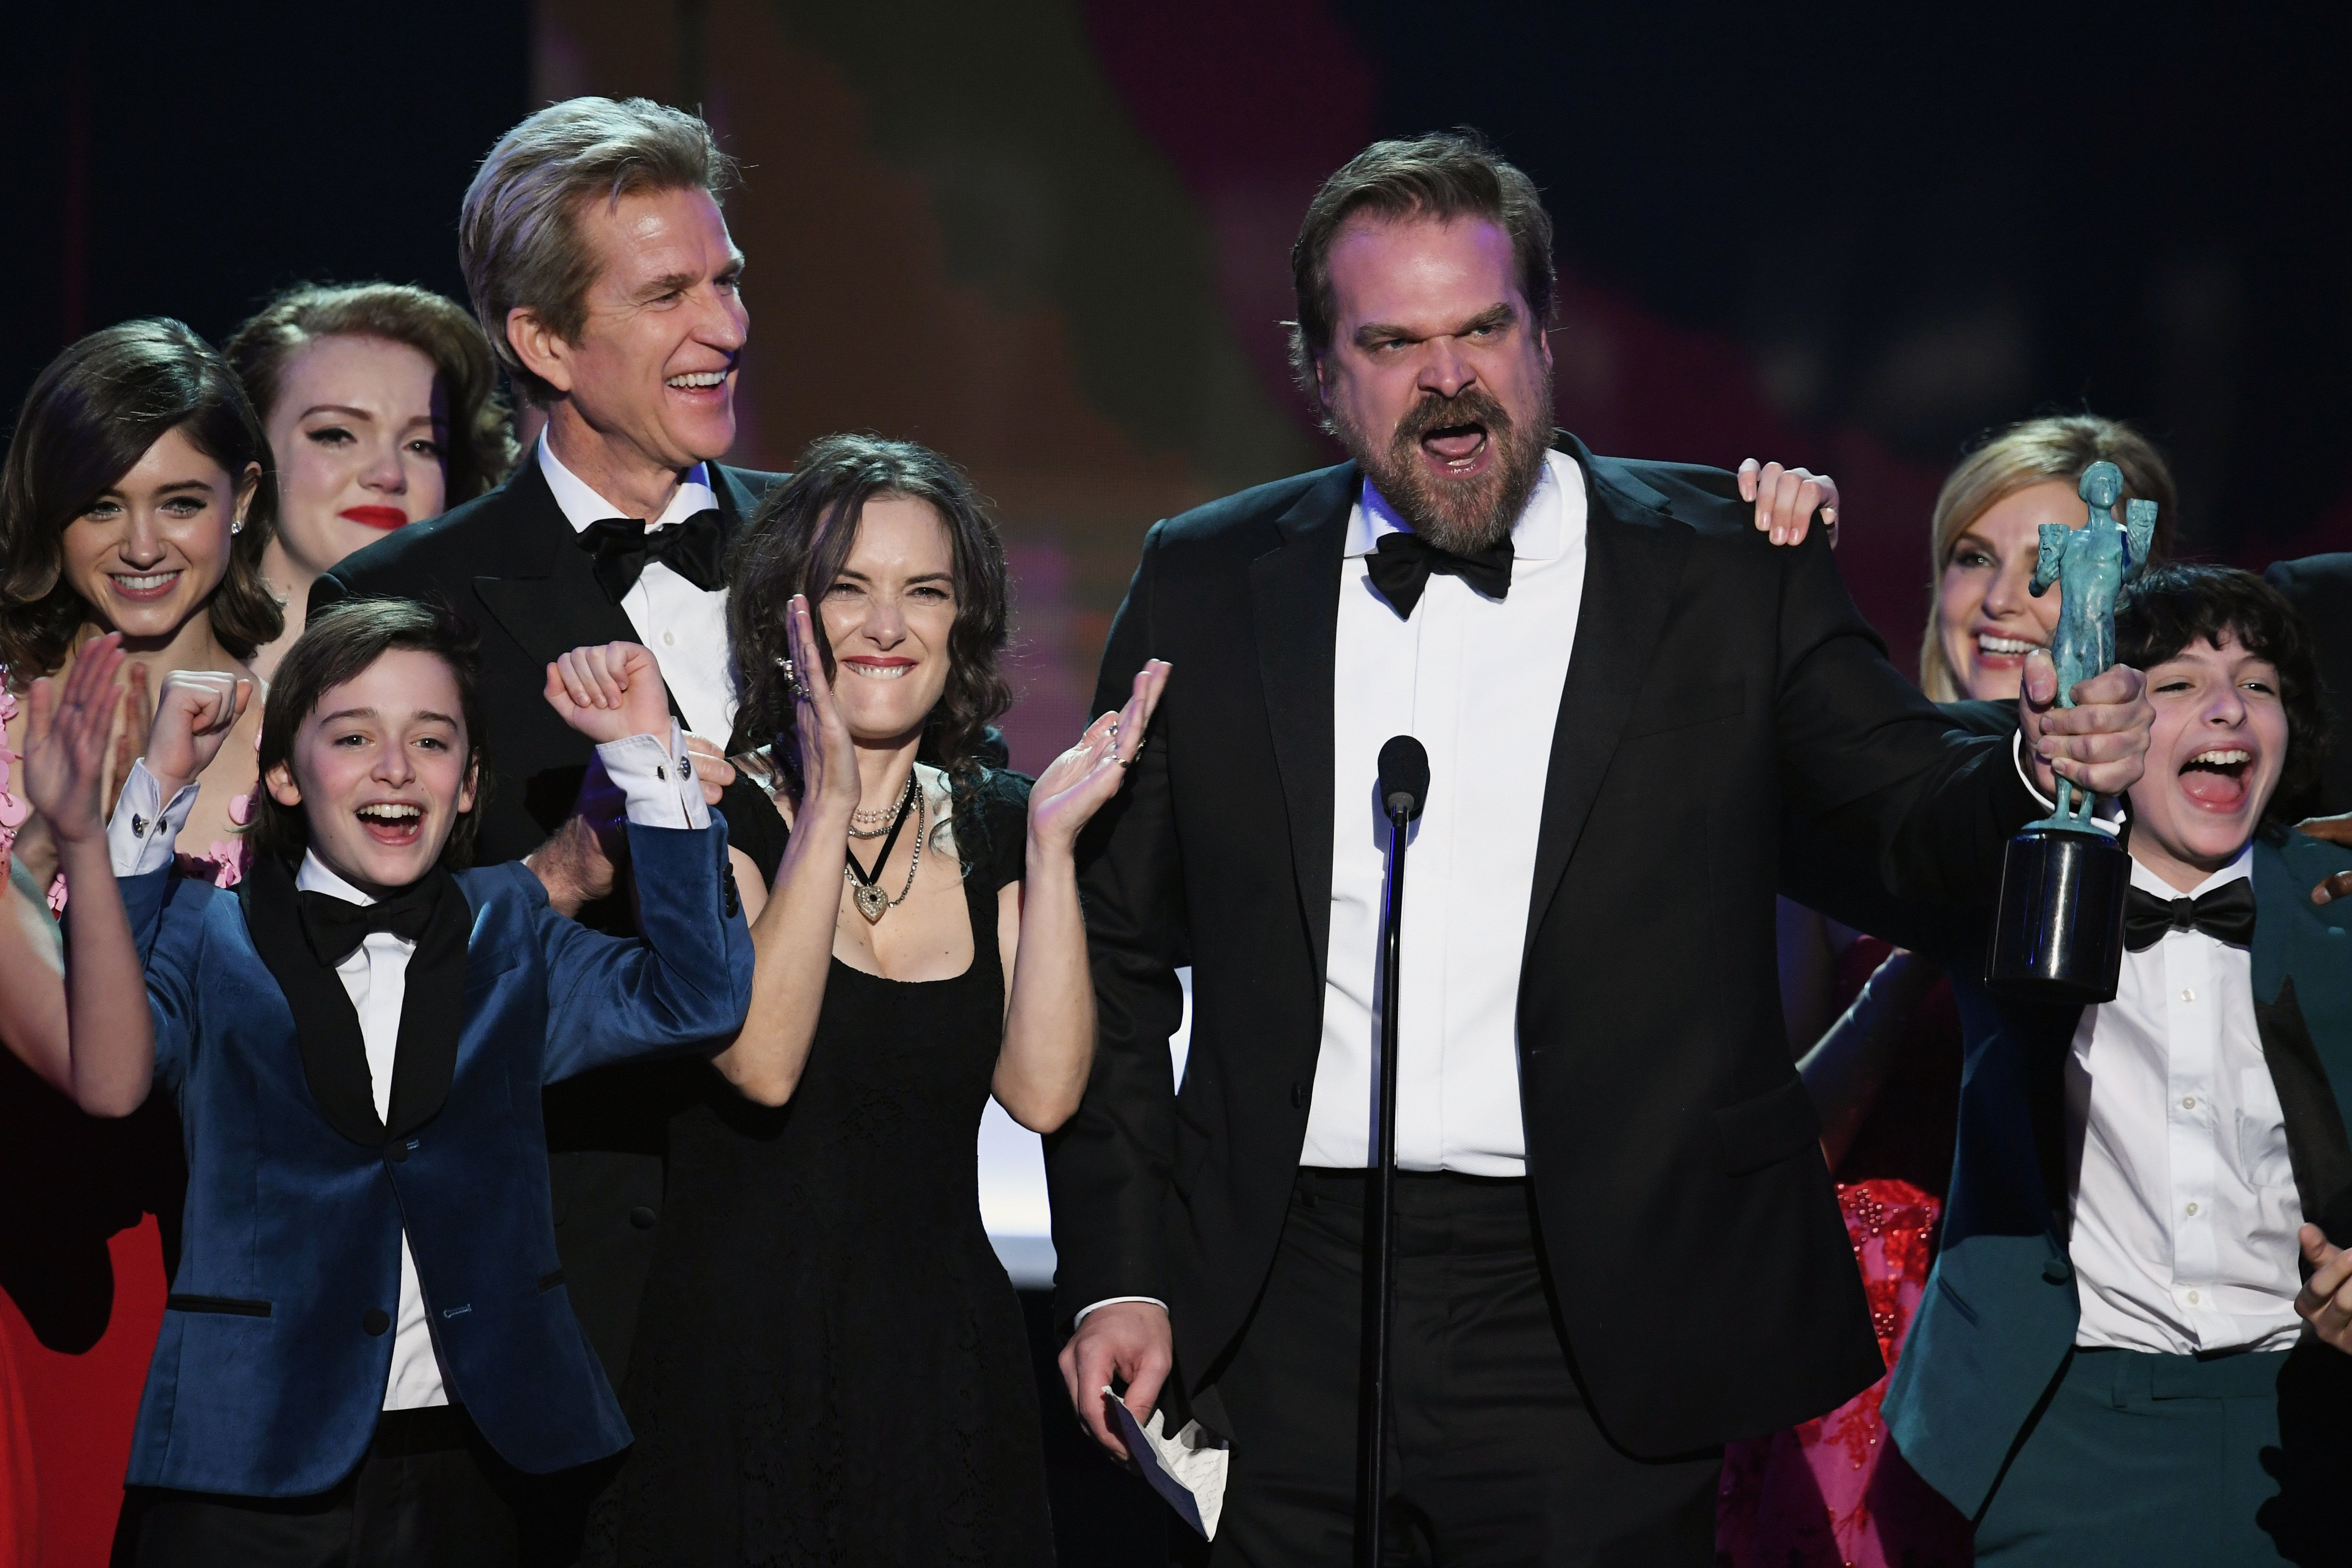 LOS ANGELES, CA - JANUARY 29:  (L-R) Actors Natalia Dyer, Shannon Purser, Matthew Modine, Noah Schnapp, Winona Ryder, David Harbour, Cara Buono, and Finn Wolfhard  of 'Stranger Things' accept Outstanding Performance by an Ensemble in a Drama Series  onstage during The 23rd Annual Screen Actors Guild Awards at The Shrine Auditorium on January 29, 2017 in Los Angeles, California. 26592_014  (Photo by Kevin Winter/Getty Images )